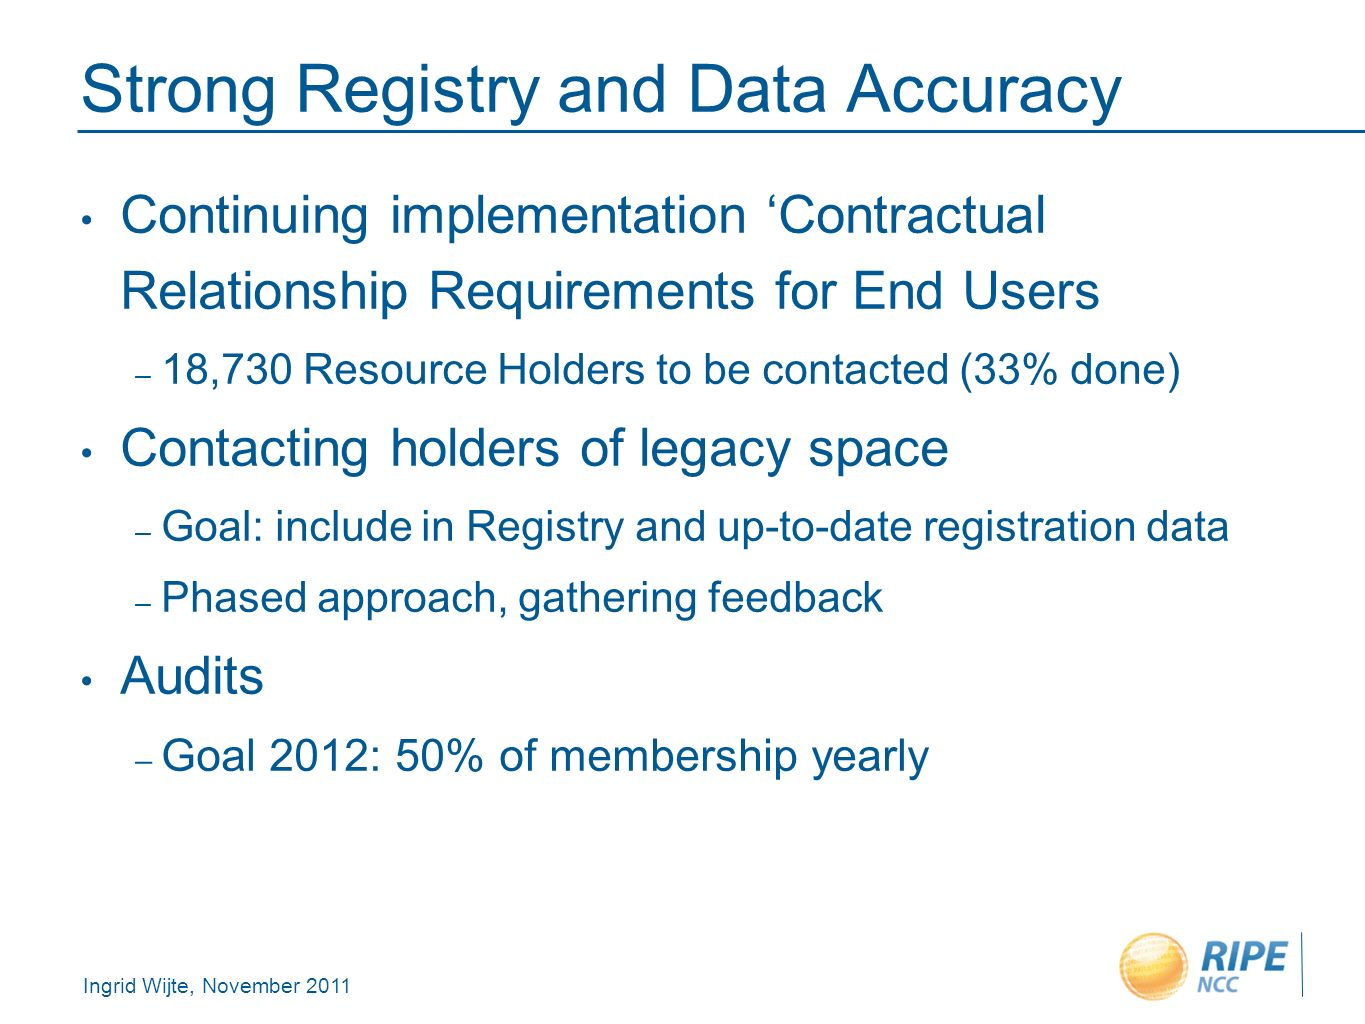 Ingrid Wijte, November 2011 Strong Registry and Data Accuracy Continuing implementation Contractual Relationship Requirements for End Users – 18,730 Resource Holders to be contacted (33% done) Contacting holders of legacy space – Goal: include in Registry and up-to-date registration data – Phased approach, gathering feedback Audits – Goal 2012: 50% of membership yearly